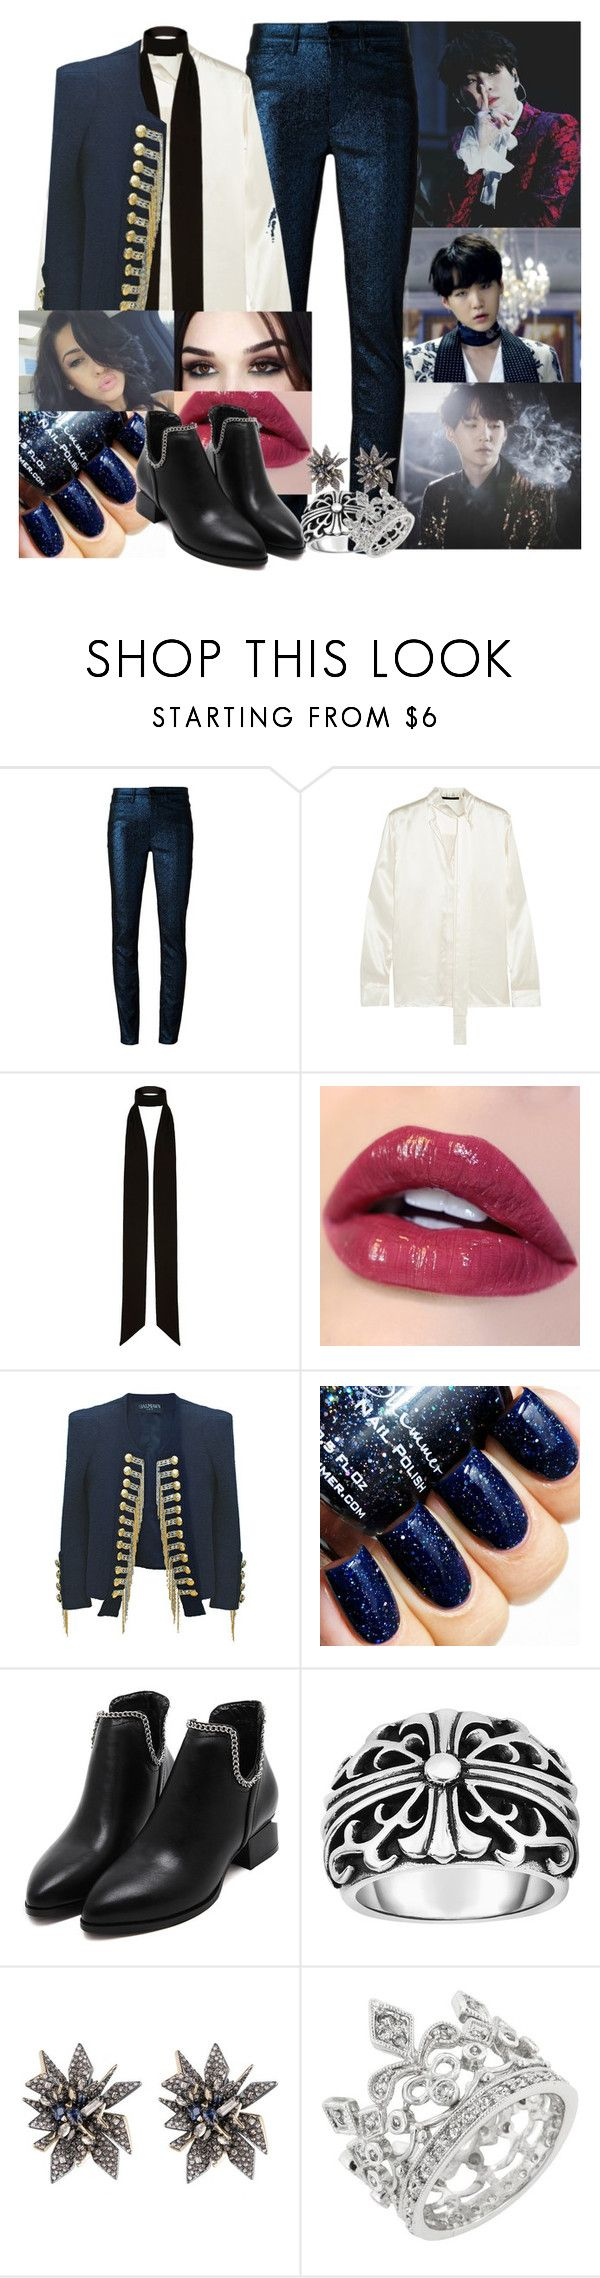 """""""Blood, Sweat and Tears Female BTS - Suga"""" by elliepetkova ❤ liked on Polyvore featuring Isabel Marant, Haider Ackermann, River Island, Balmain, Phillip Gavriel and Alexis Bittar"""